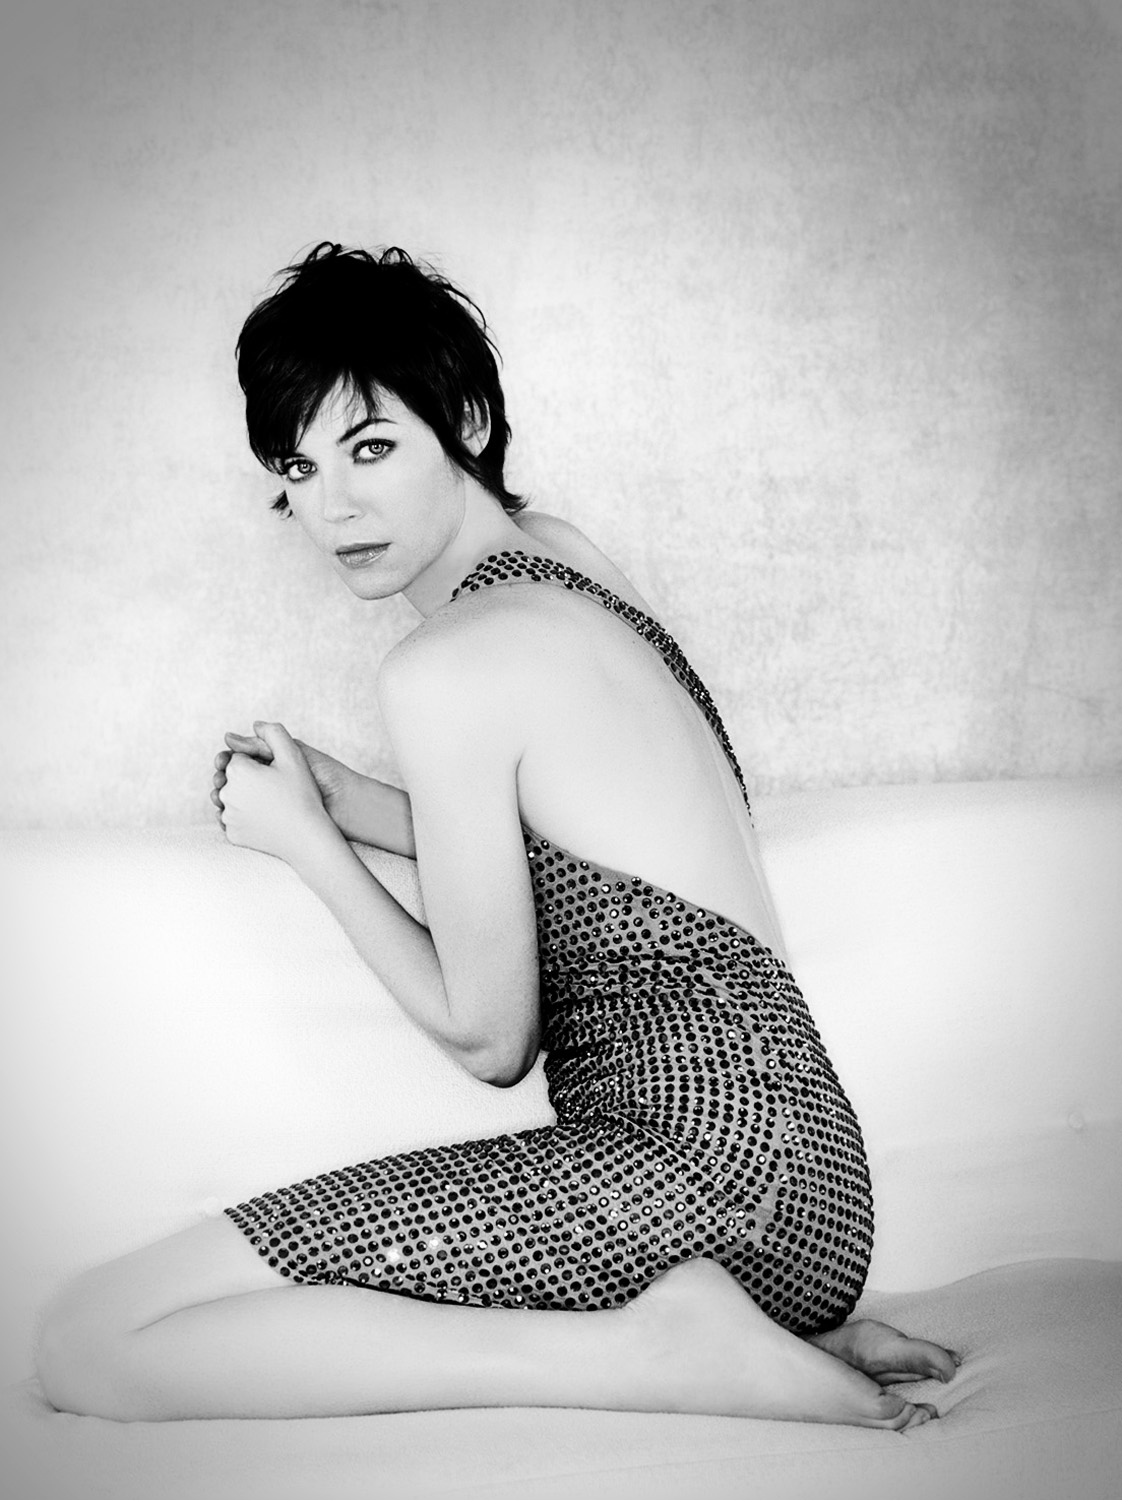 CONNIE-NIELSEN-Photography-by-Indira-Cesarine-007x-bw-preview.jpg